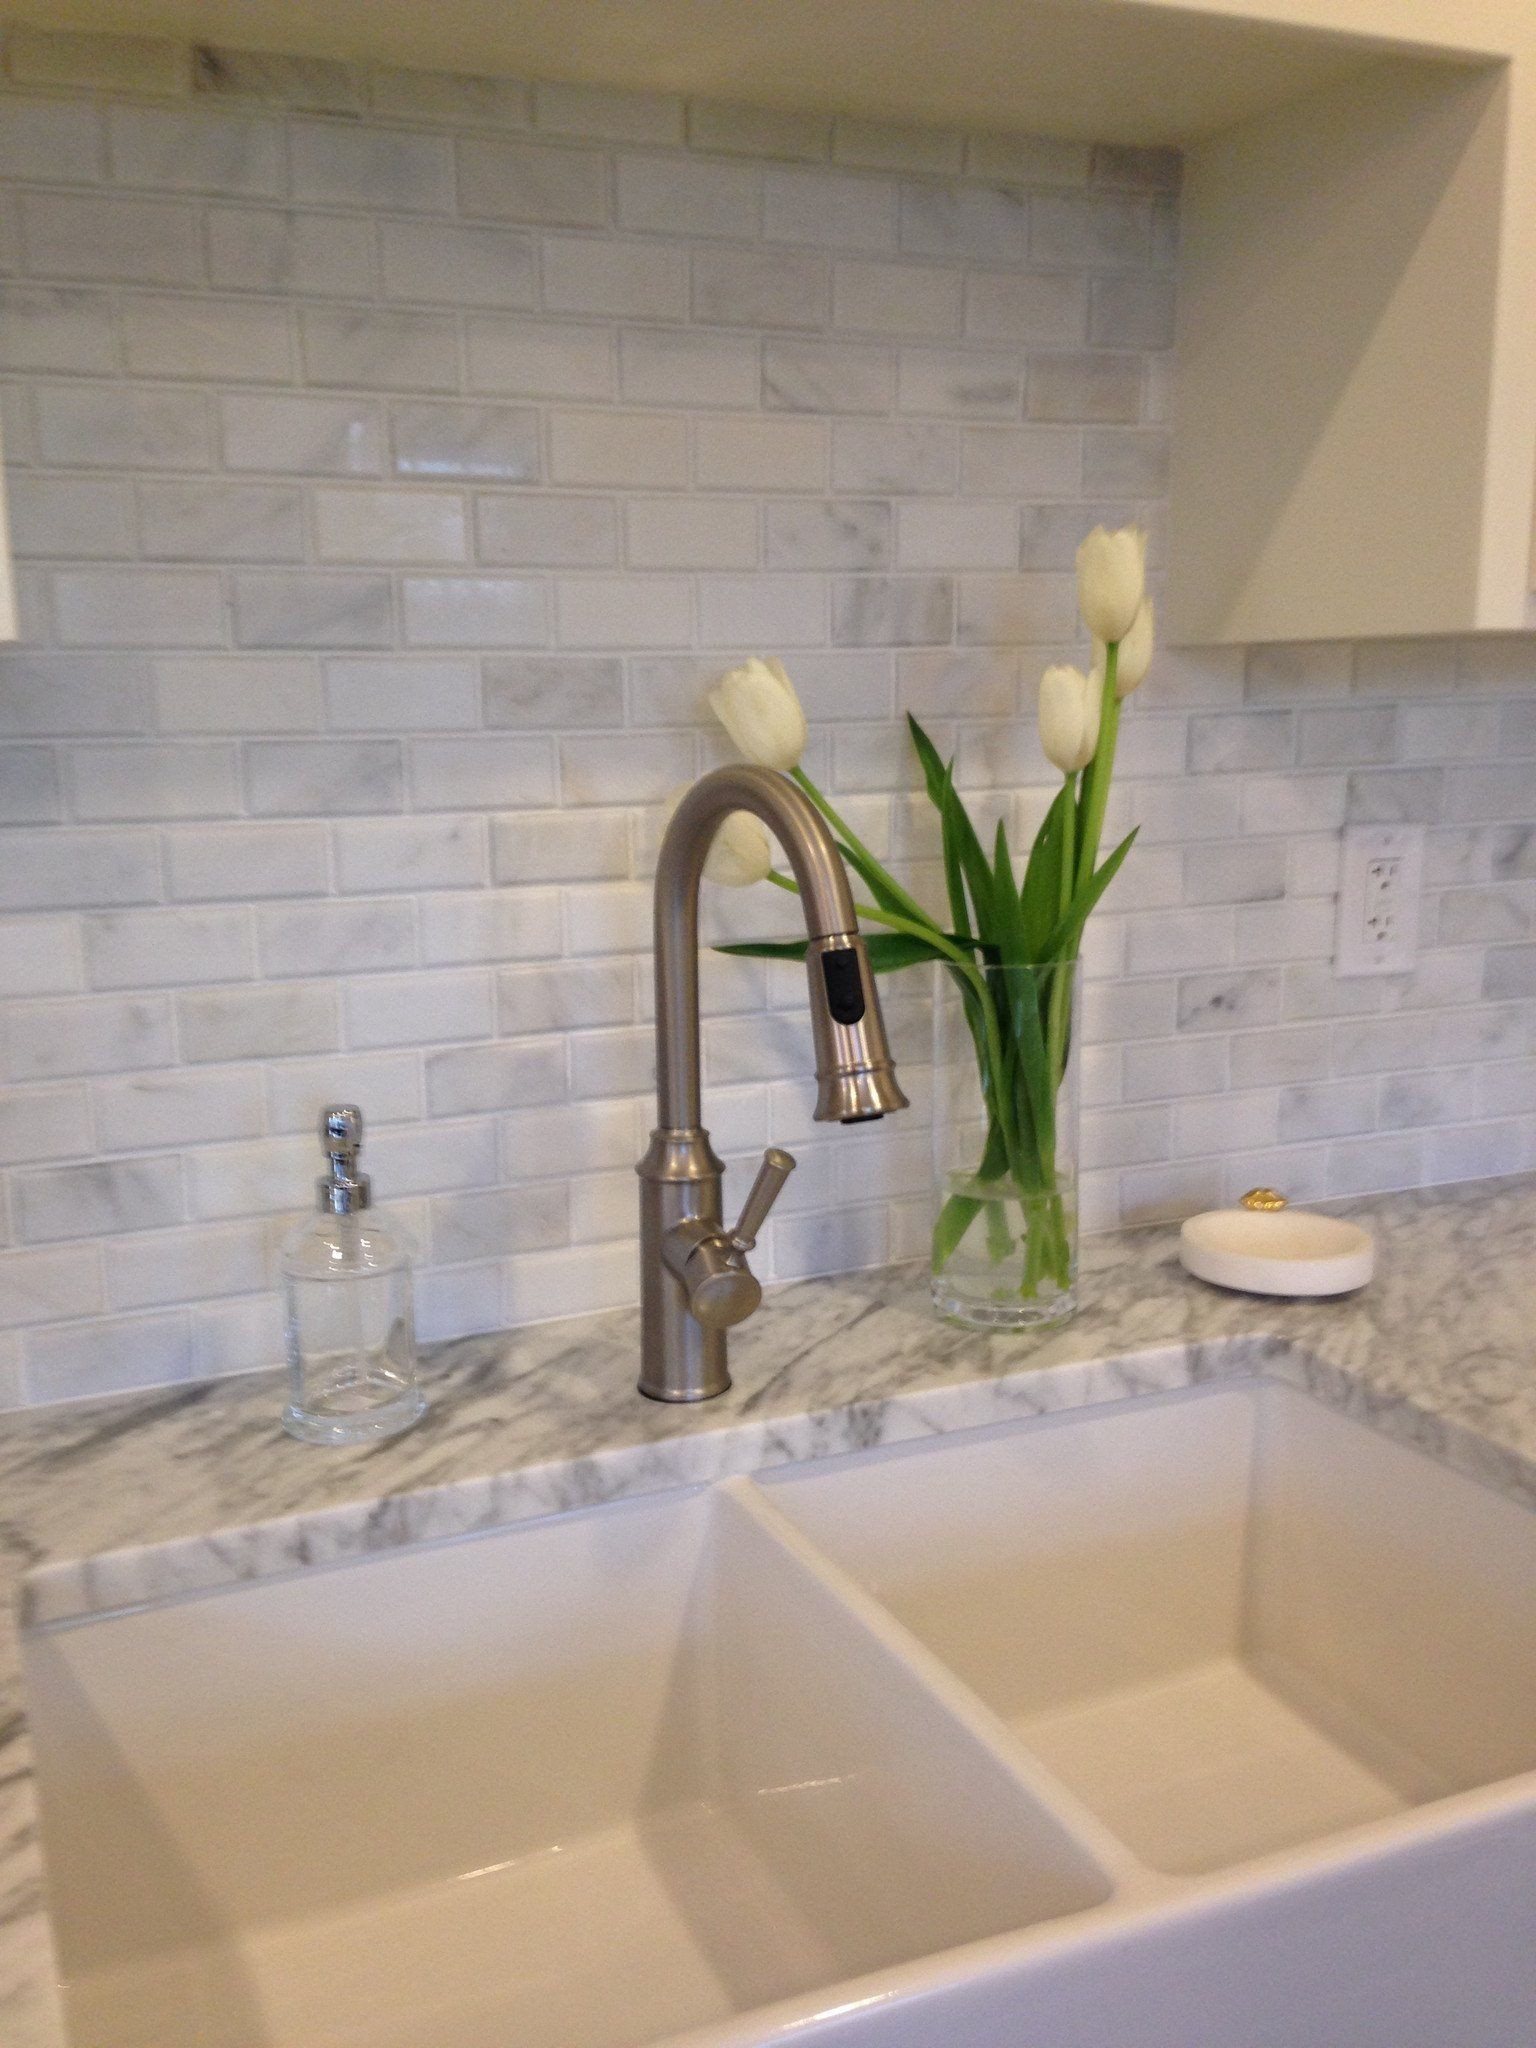 Beveled Brick 2x4 Subway Tile Mosaic Carrara Marble Honed